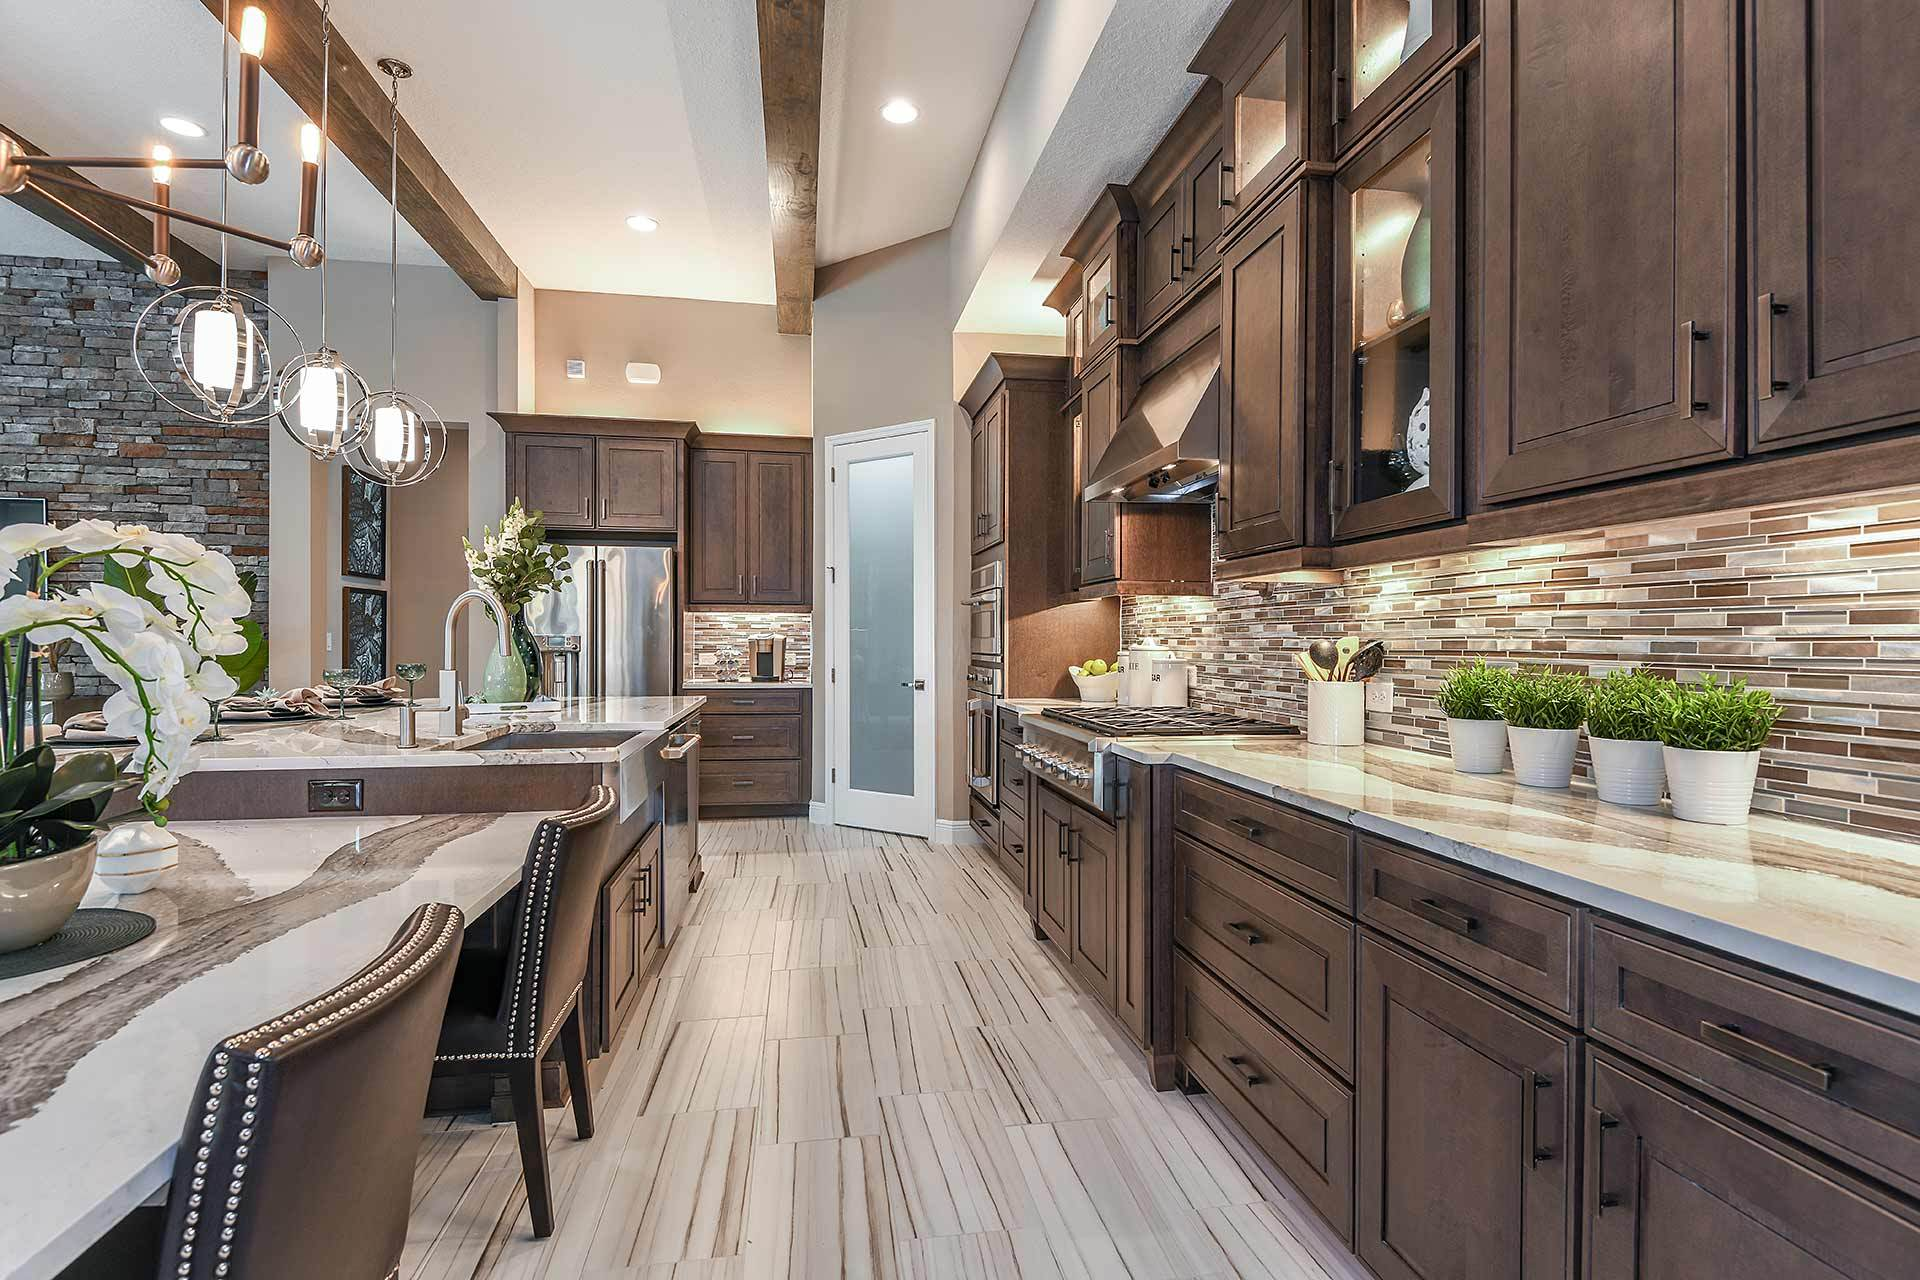 Kitchen featured in the Key West I By Homes by WestBay in Tampa-St. Petersburg, FL